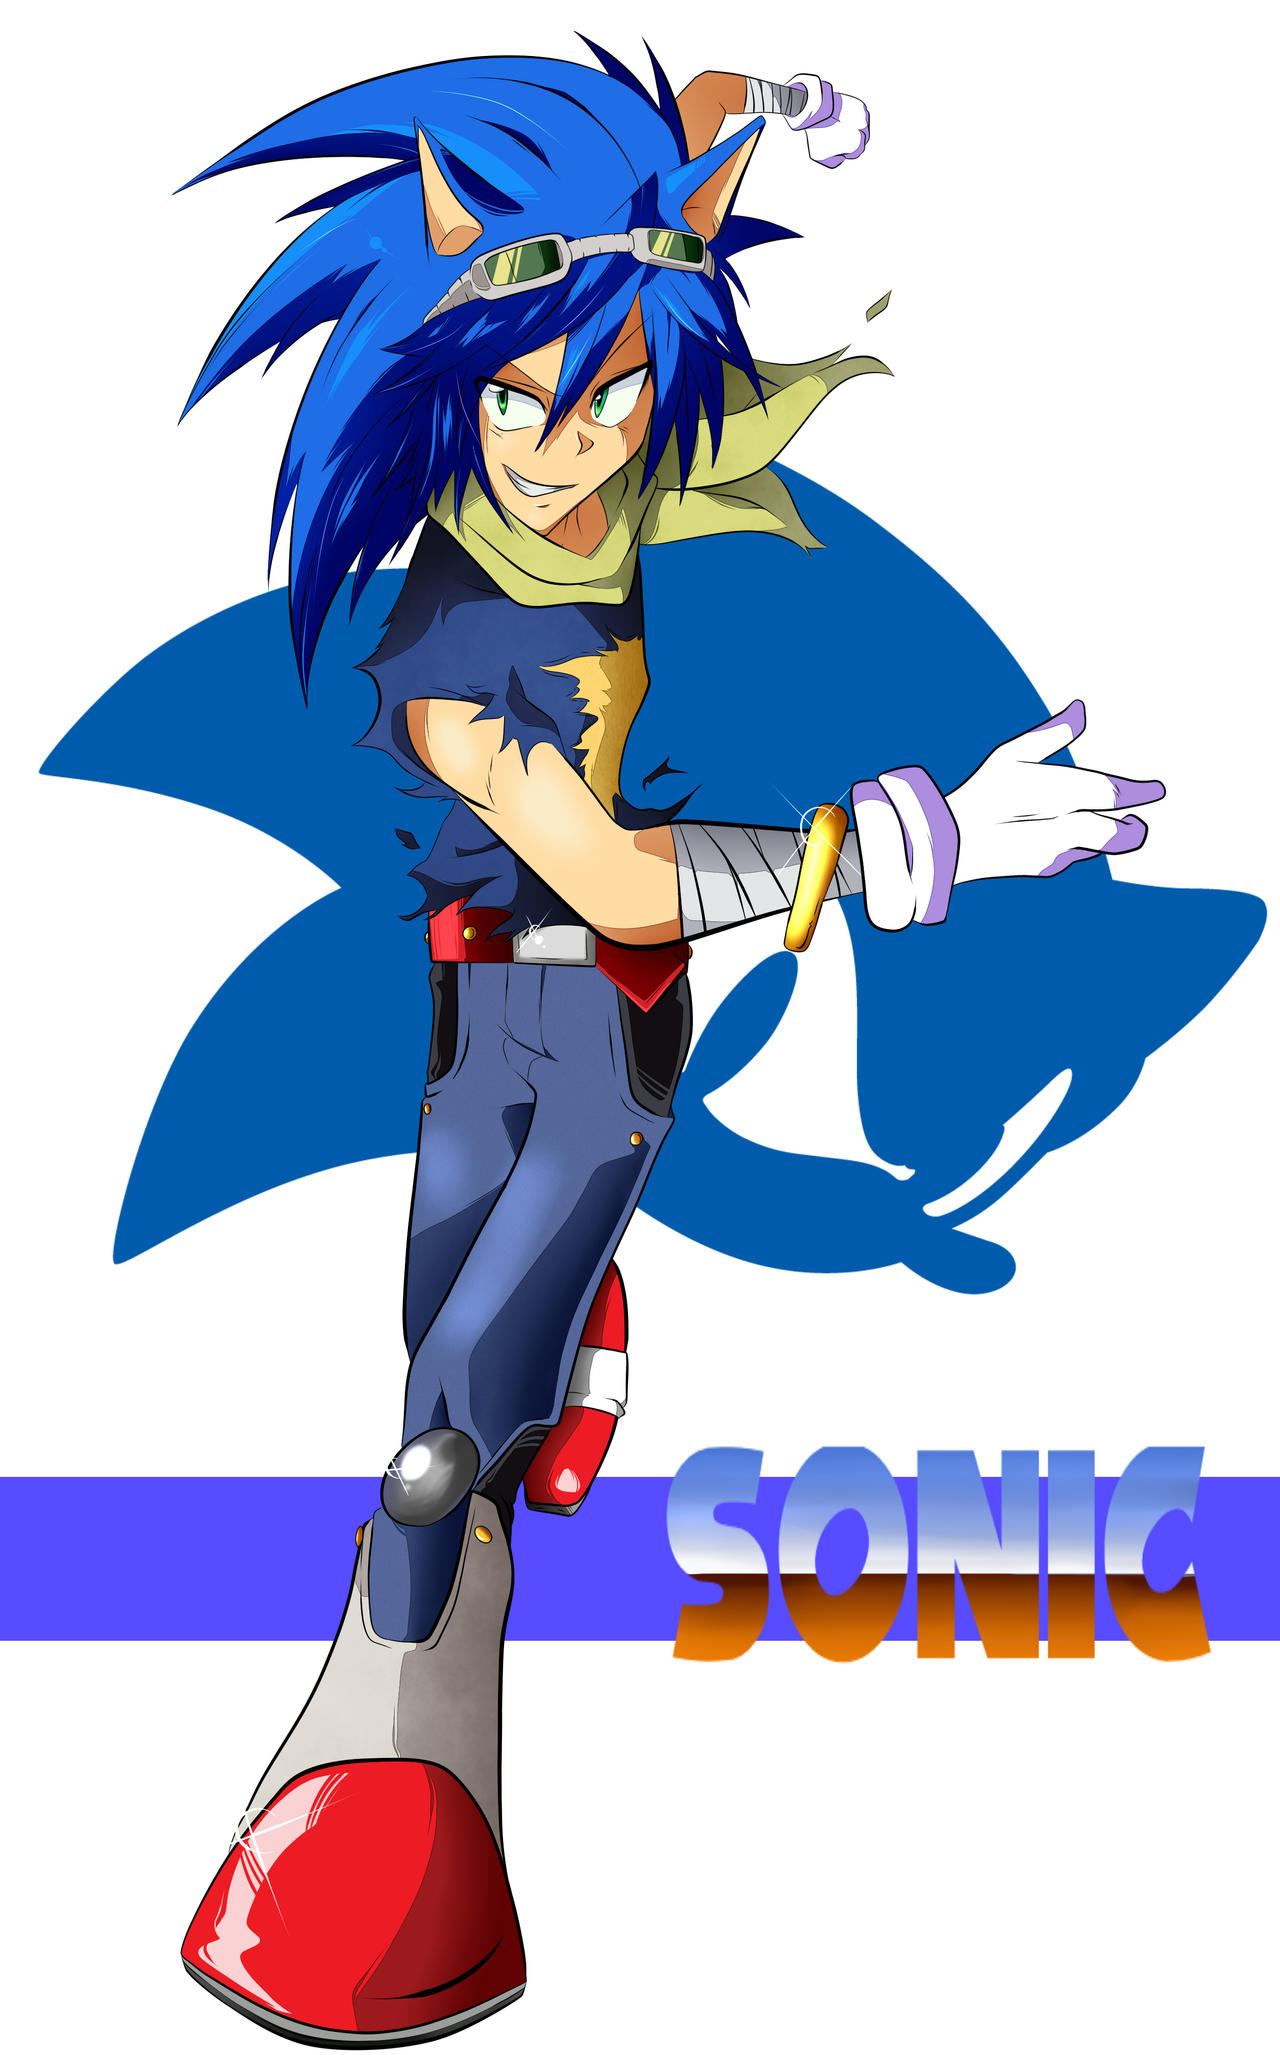 Human Sonic The Hedgehog By Saikoaweonaoxxlll On Deviantart